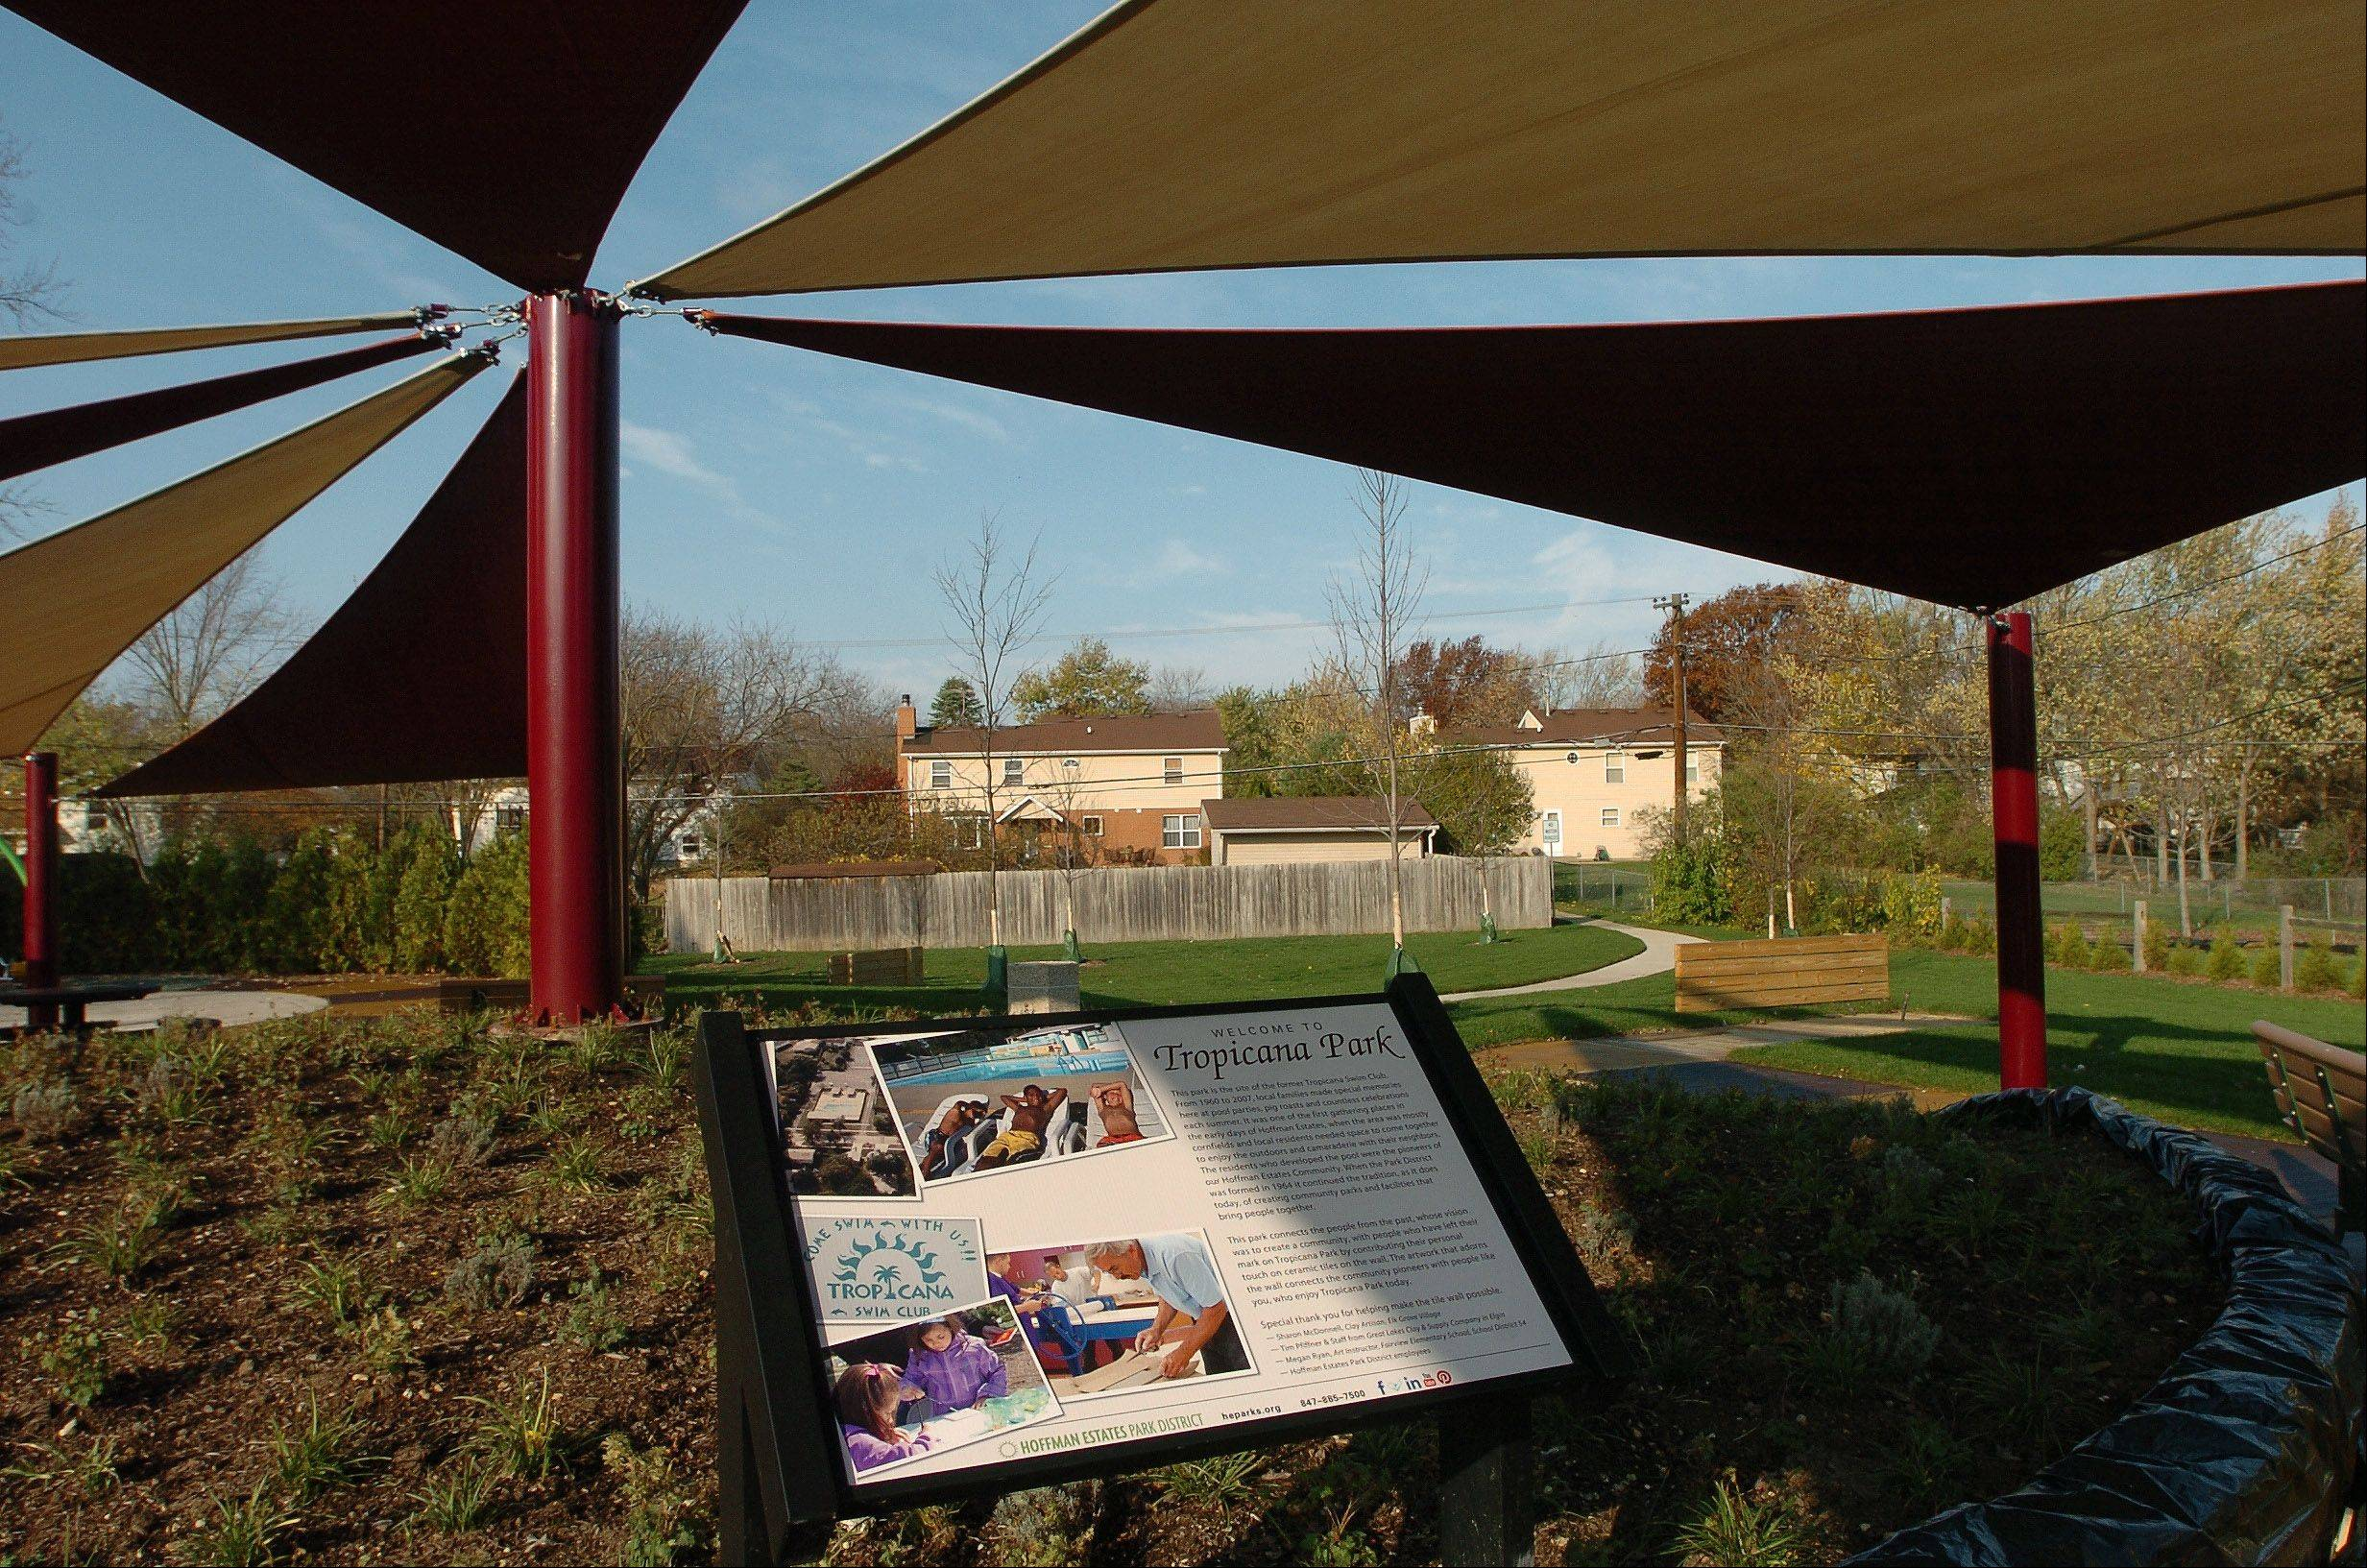 The fabric shade shelter is one of the key details of Tropicana Park in Hoffman Estates, created with community input on the site of a former swim club that fell on hard times.